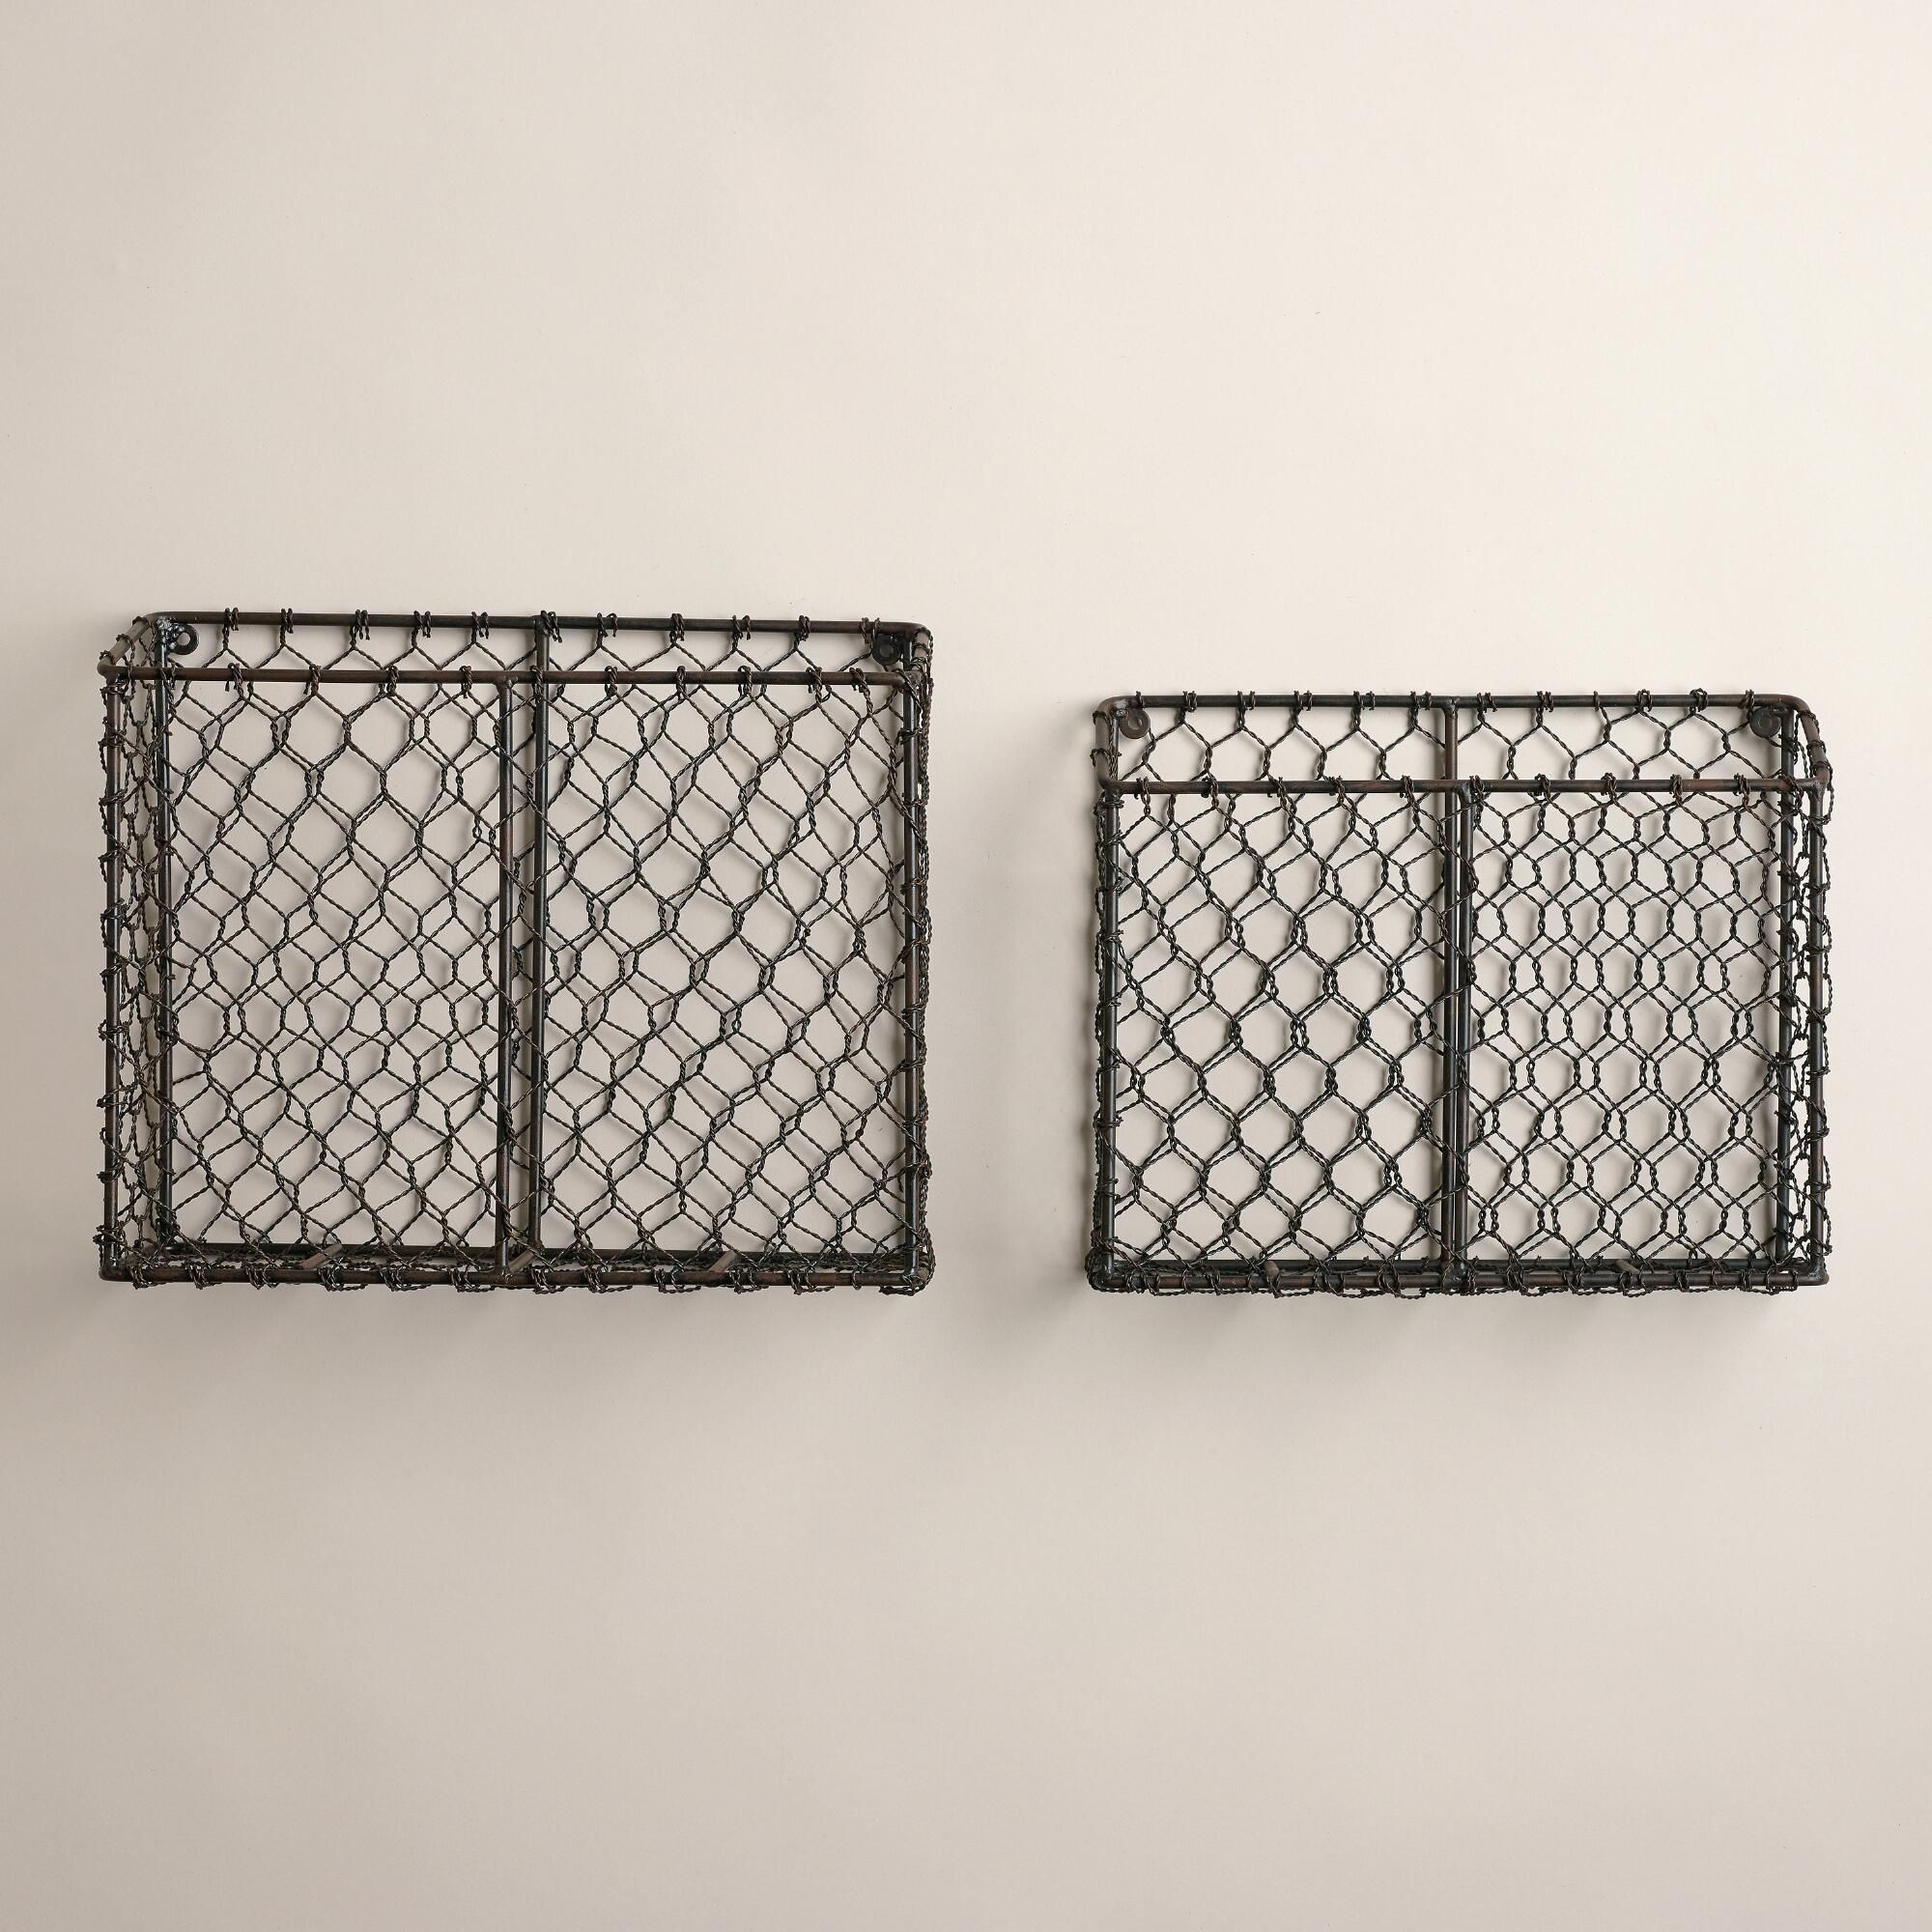 Crafted in India of iron wire with an antique finish these baskets